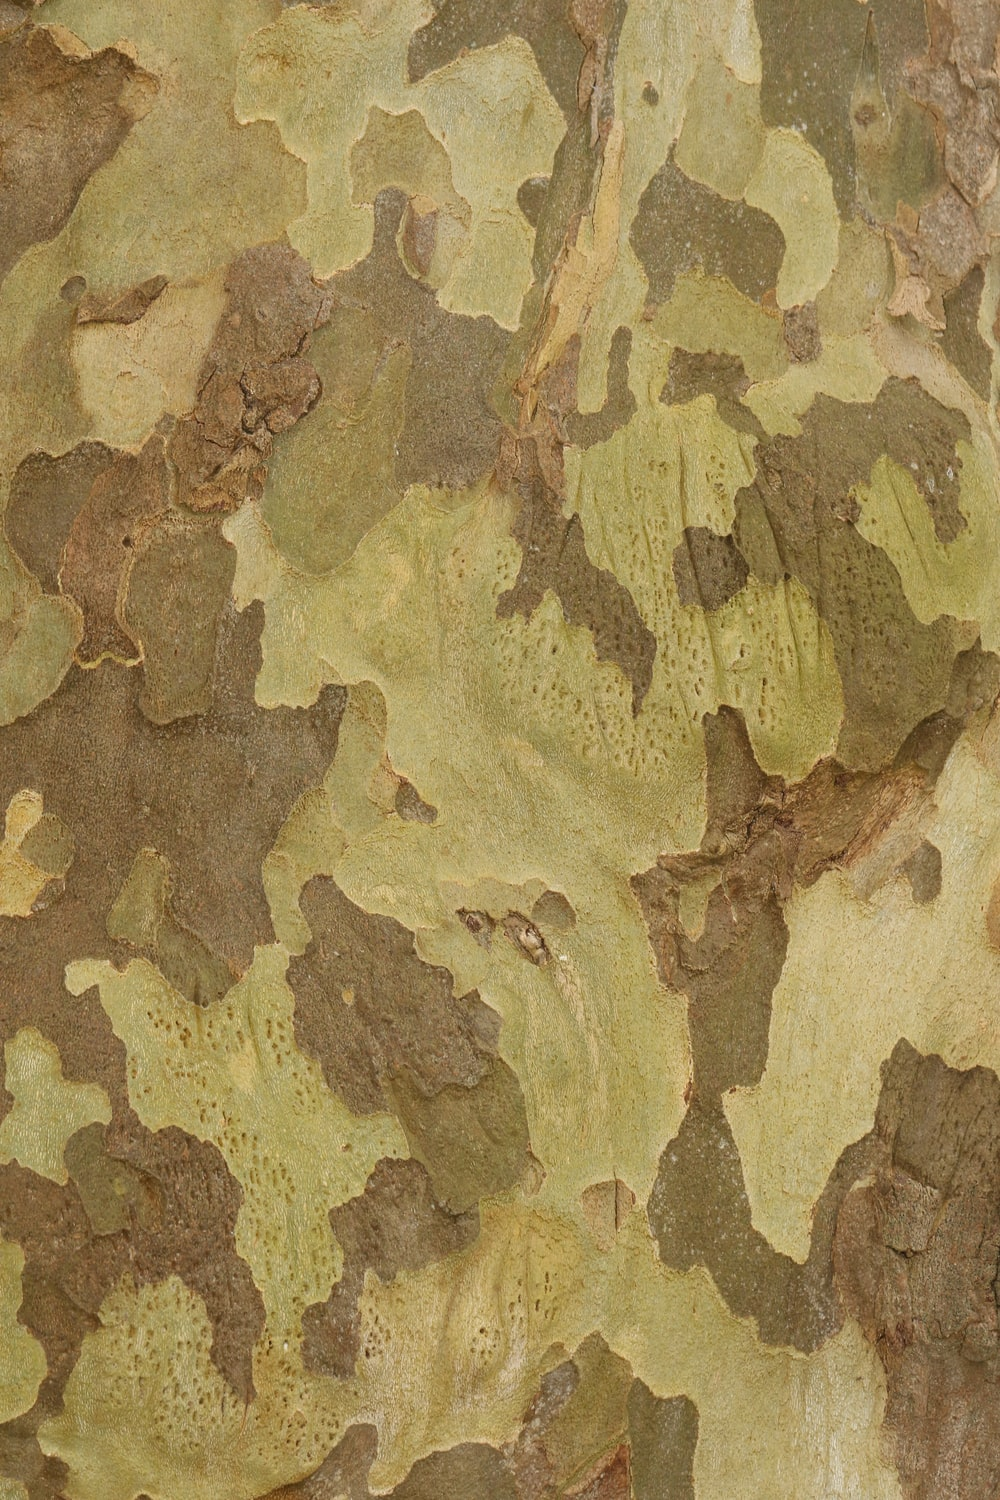 brown and beige camouflage textile